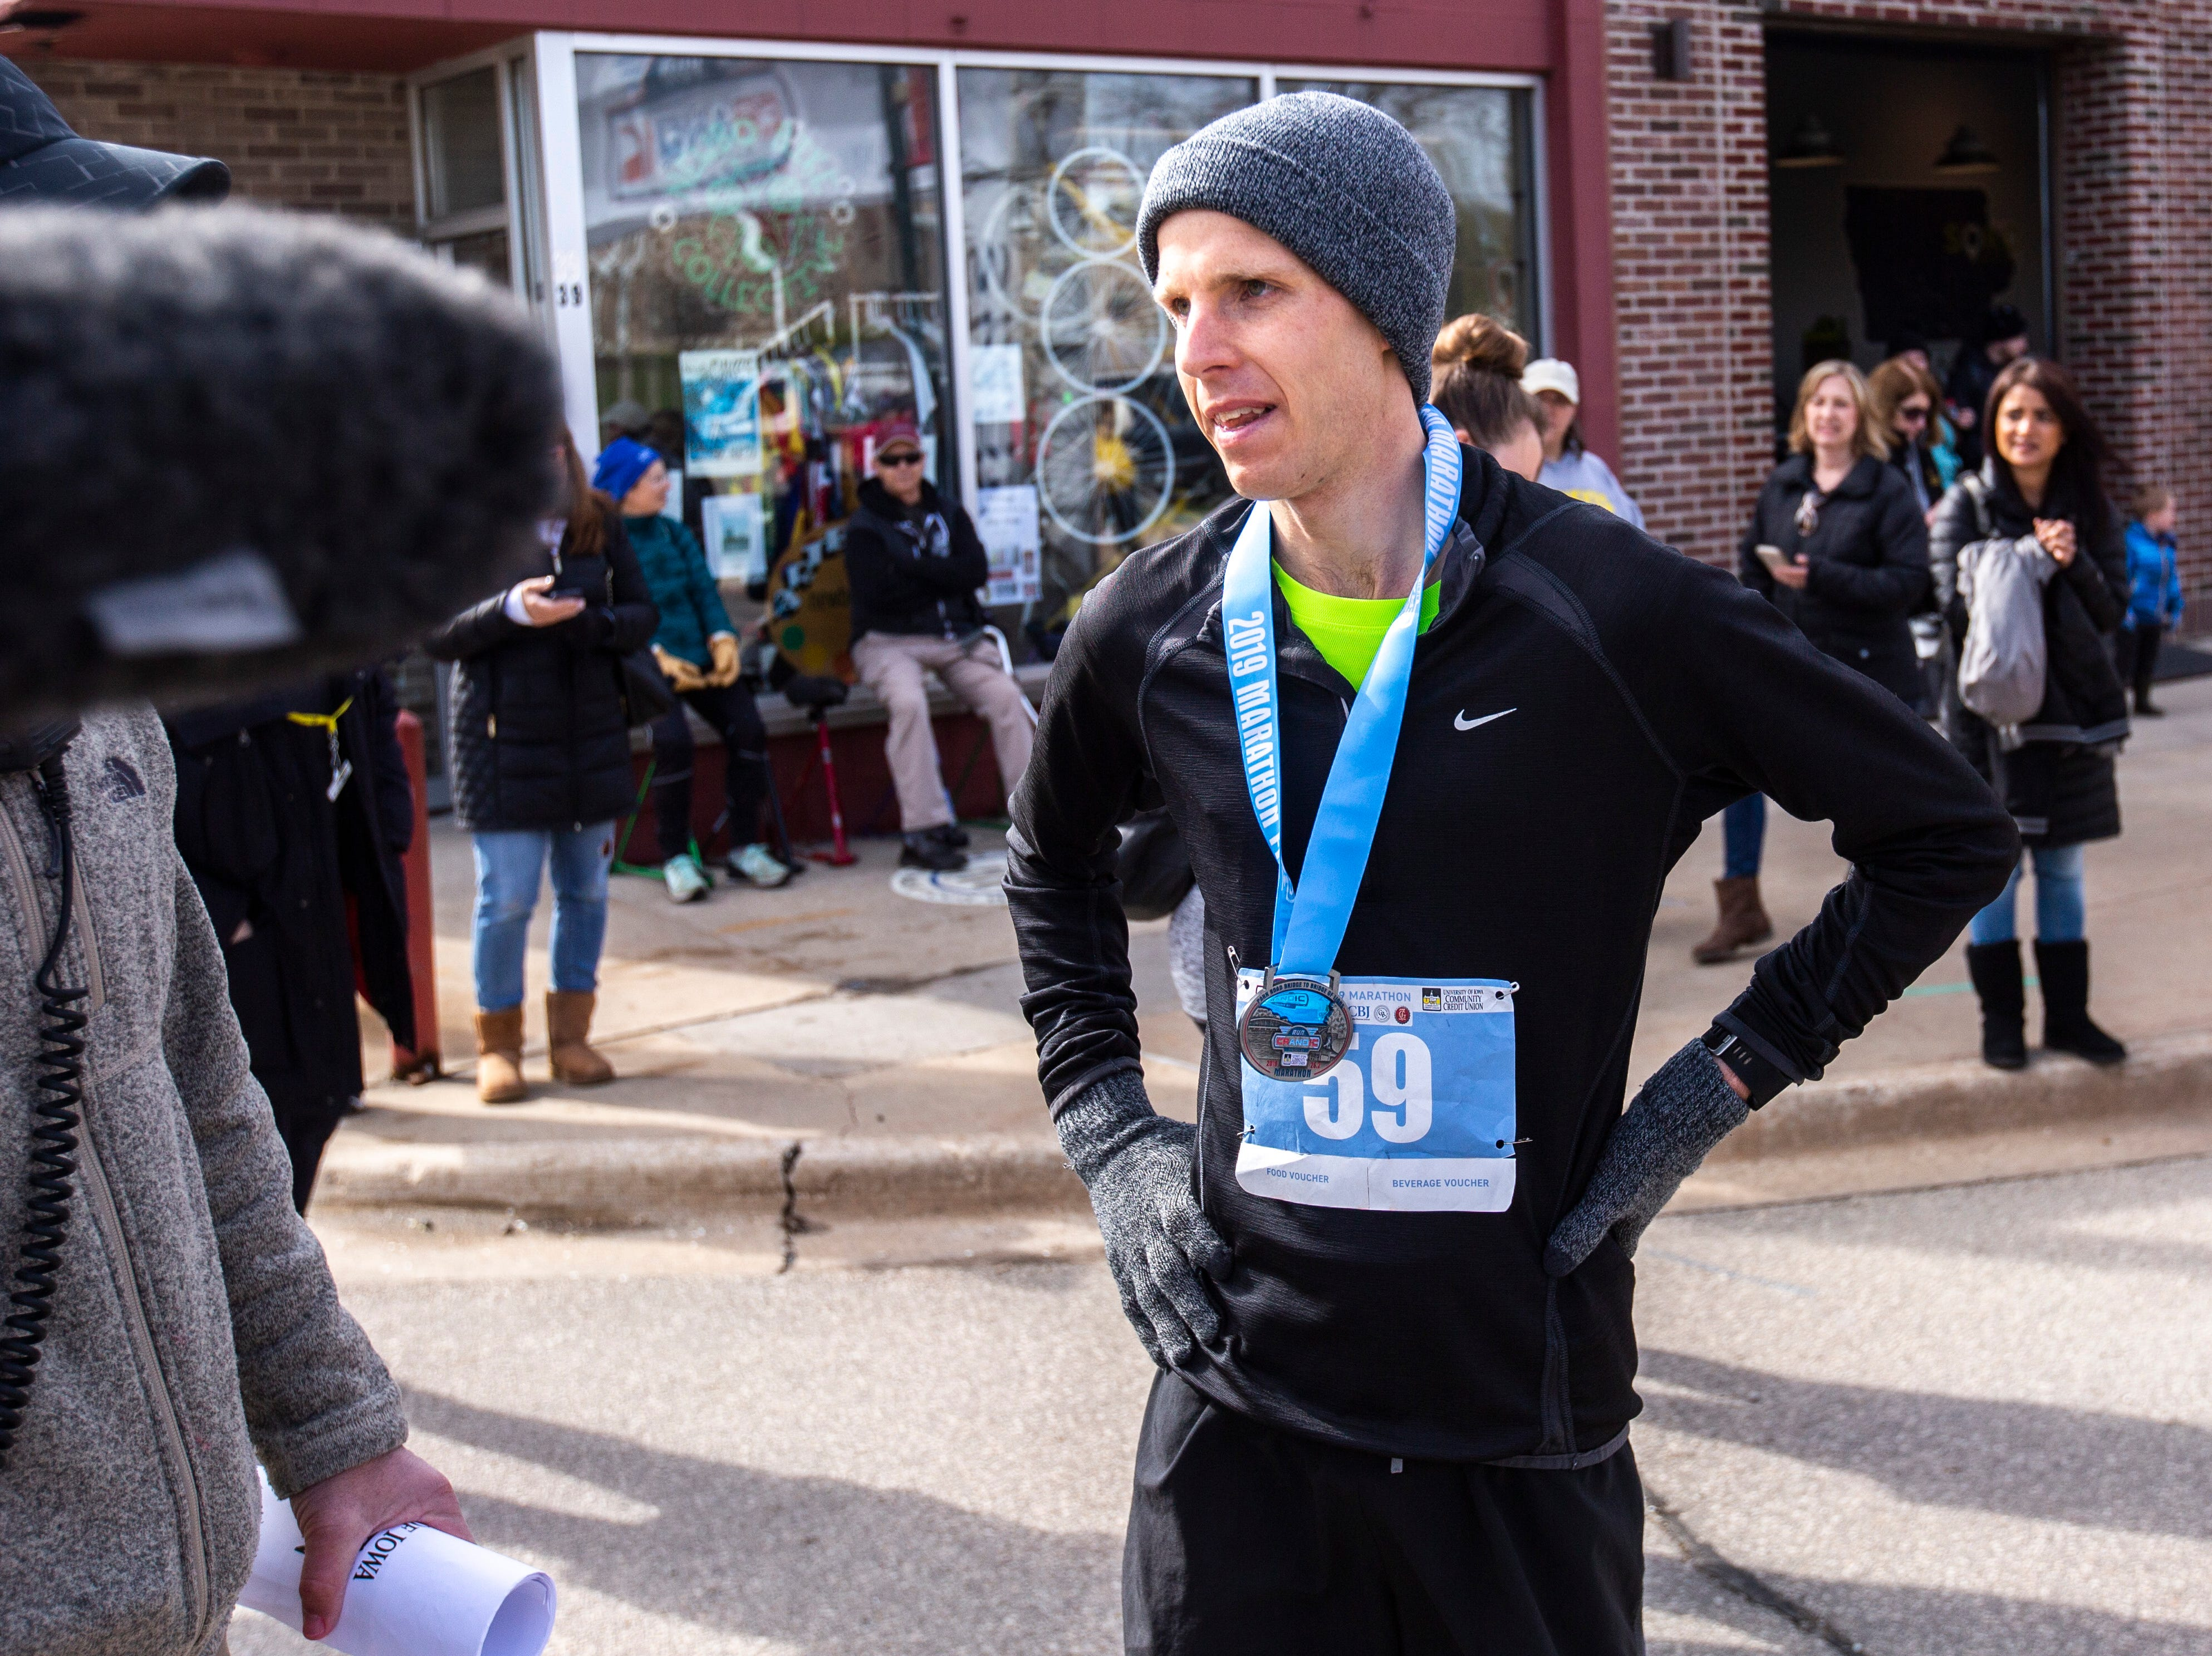 Tyler Culver of Cedar Rapids celebrates after being the first man to finish during the second annual Run CRANDIC marathon, Sunday, April 28, 2019, along 16th Avenue SE in Cedar Rapids, Iowa. Culver finished with a time of 2:50:02.